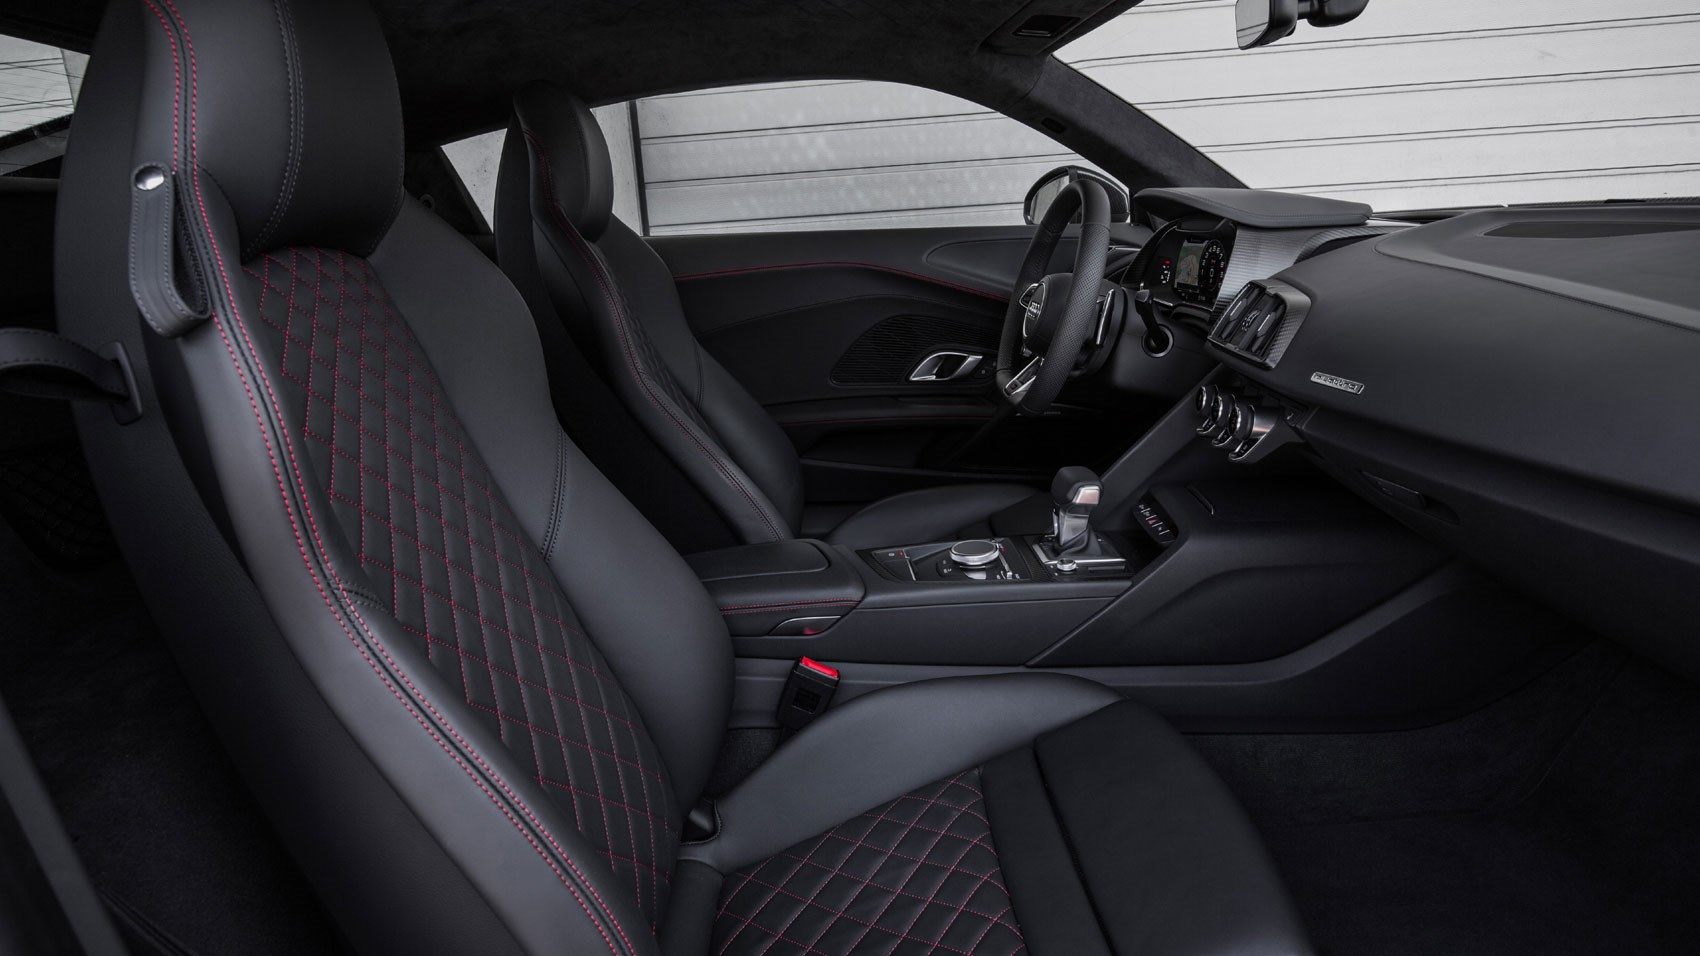 audi r8 interior. 2015 audi r8 interior is more interesting on the driveru0027s side than passengeru0027s